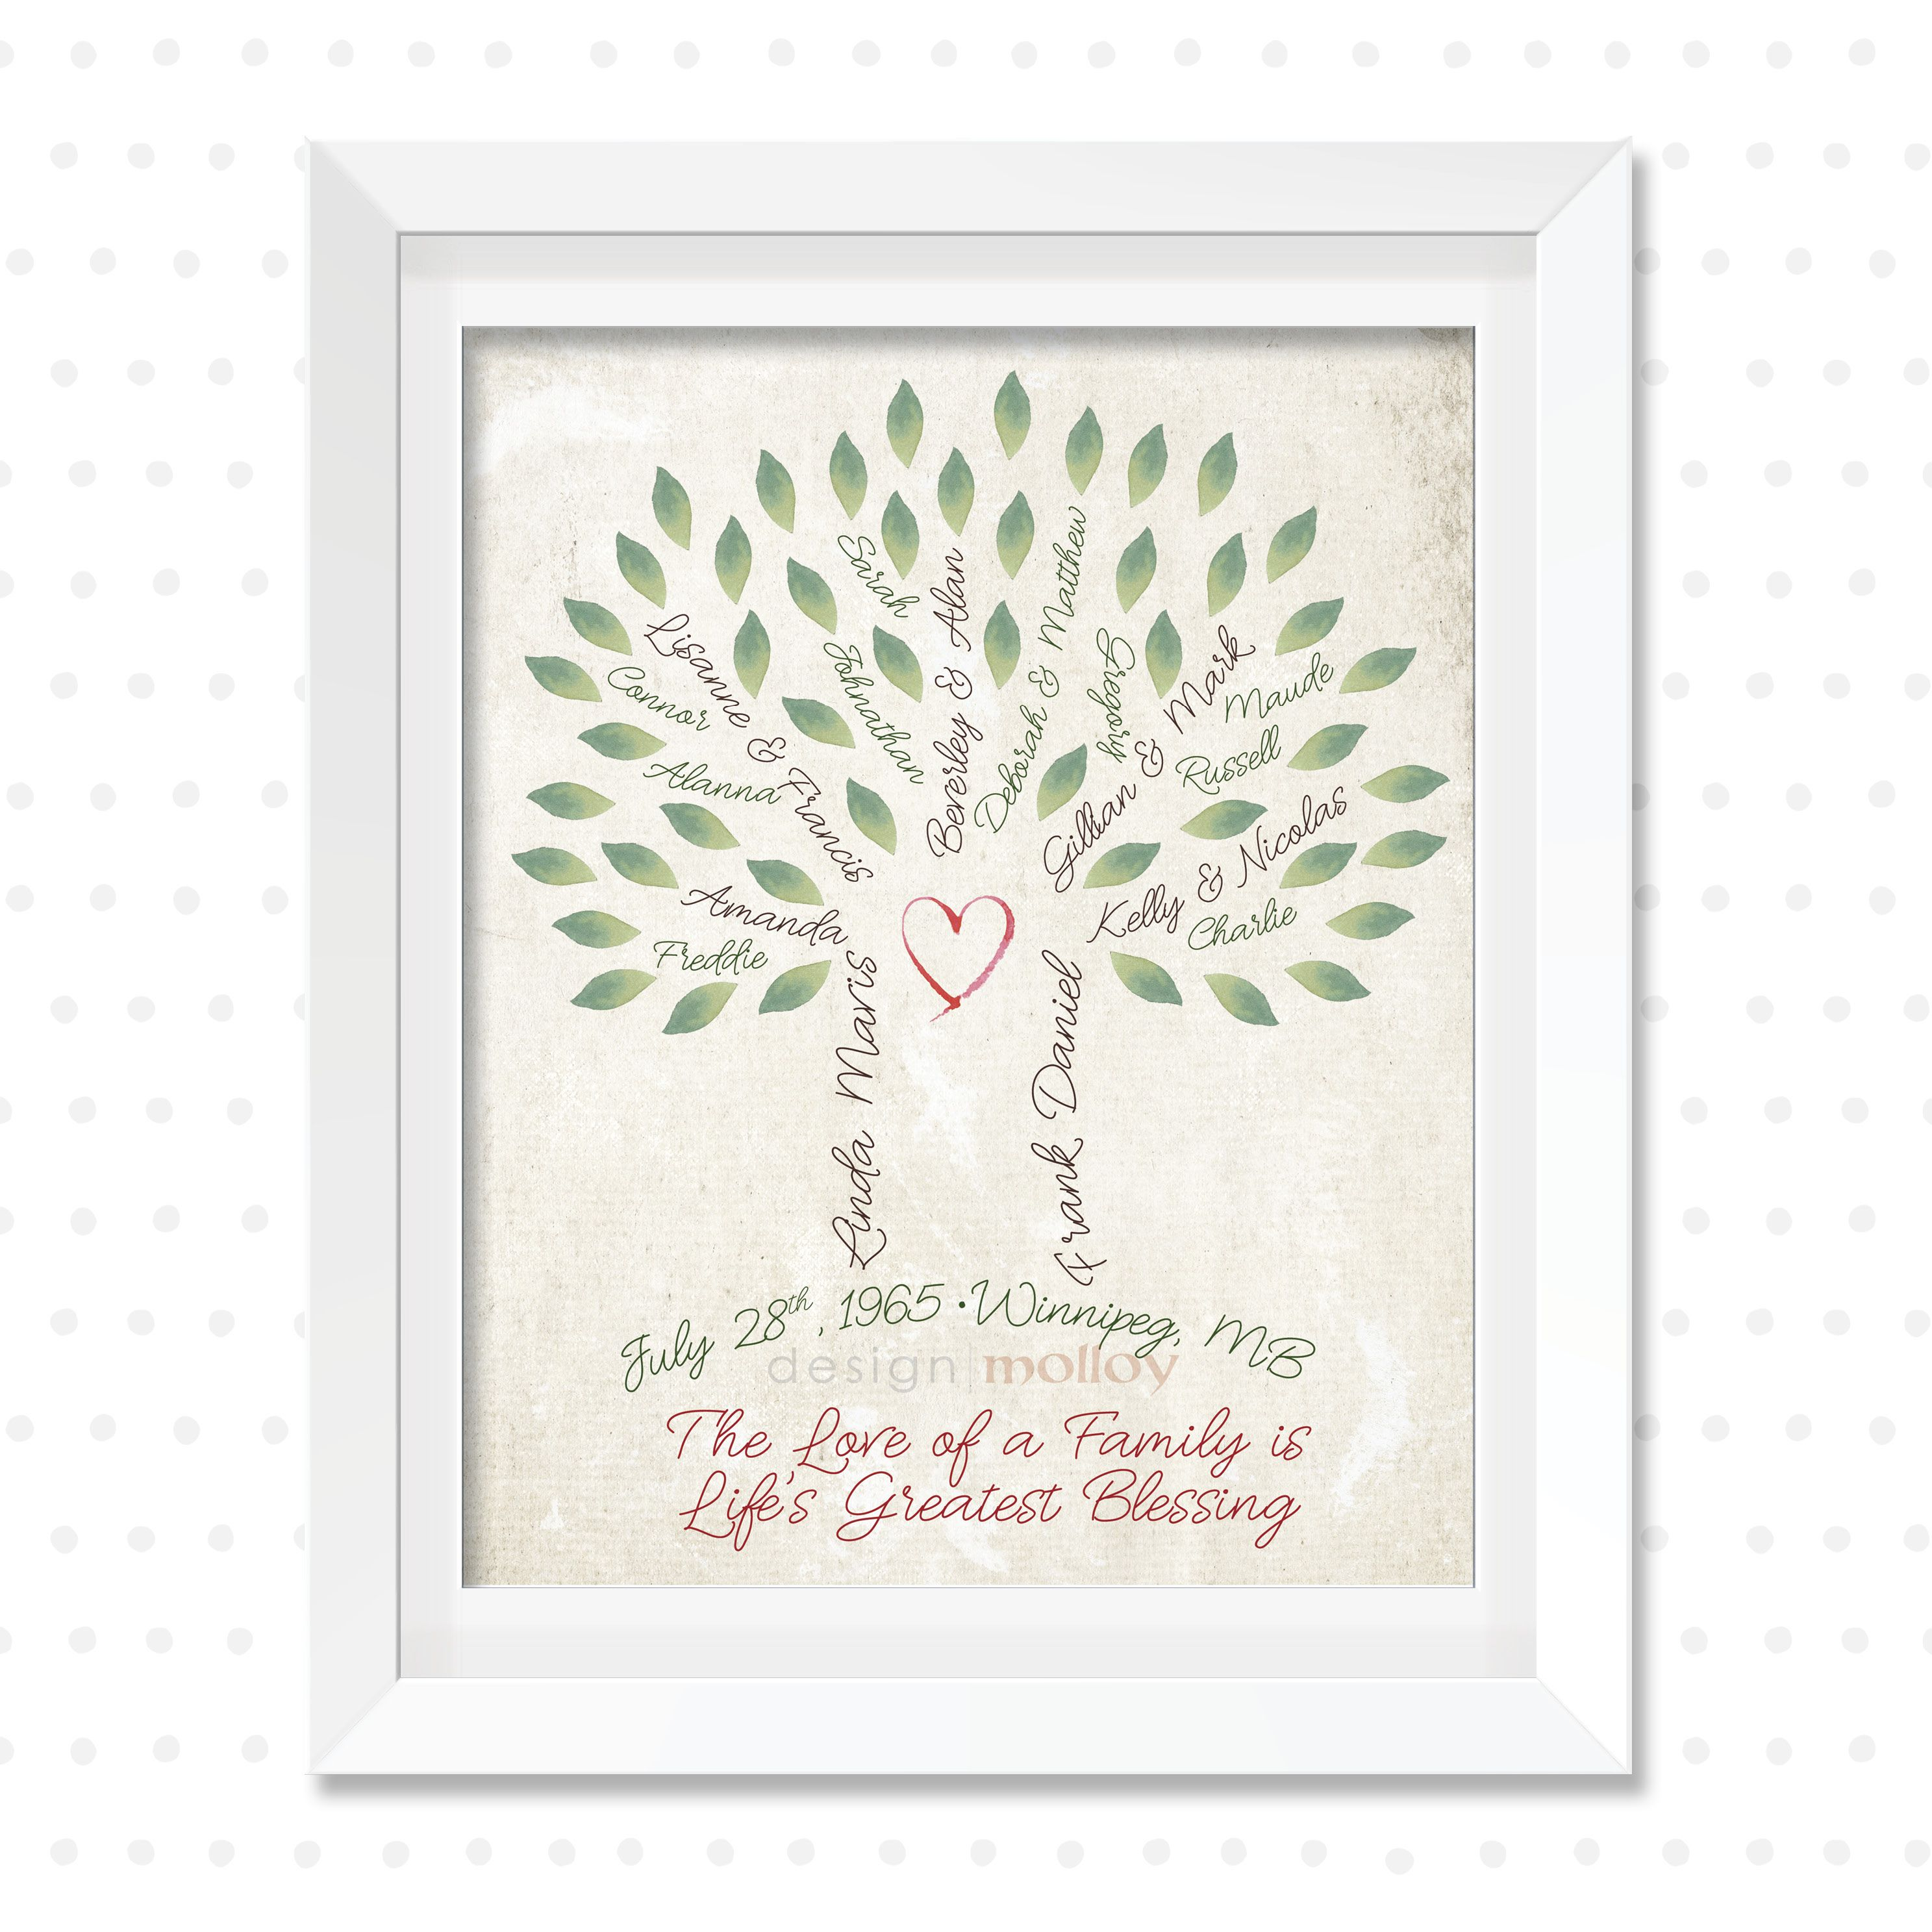 PERSONALISED WORDART FAMILY TREE UNIQUE GIFT FRAME//PRINT